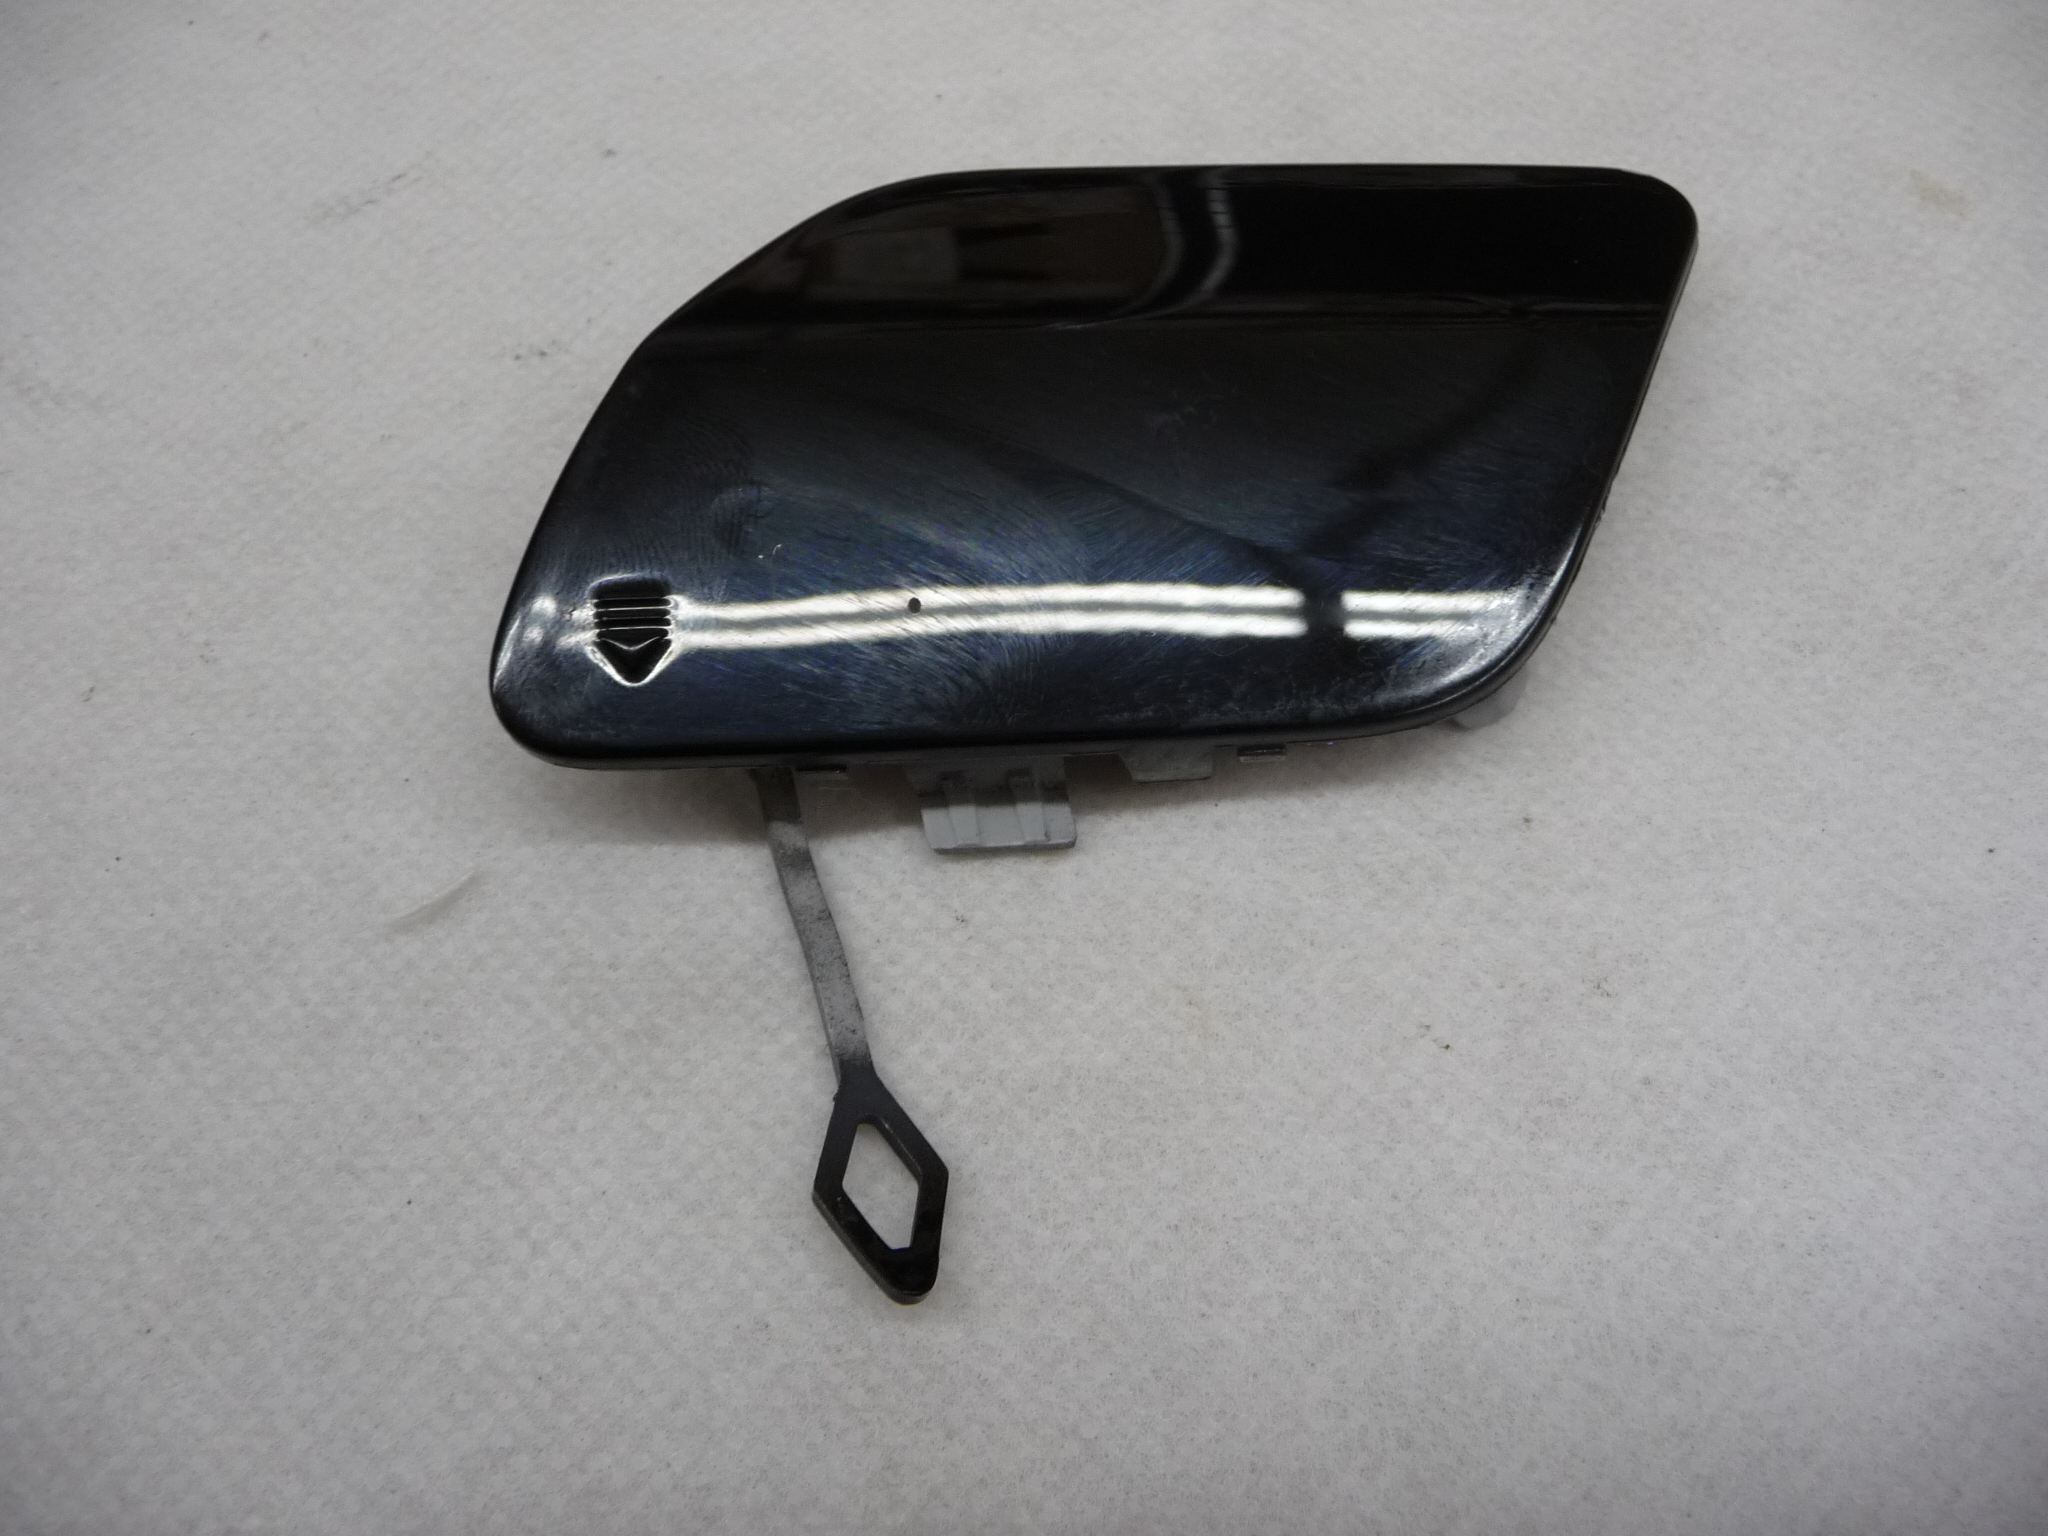 2015 2016 2017 Mercedes Benz W205 C300 Rear Bumper Tow Hook Cover A2058850224 OEM OE